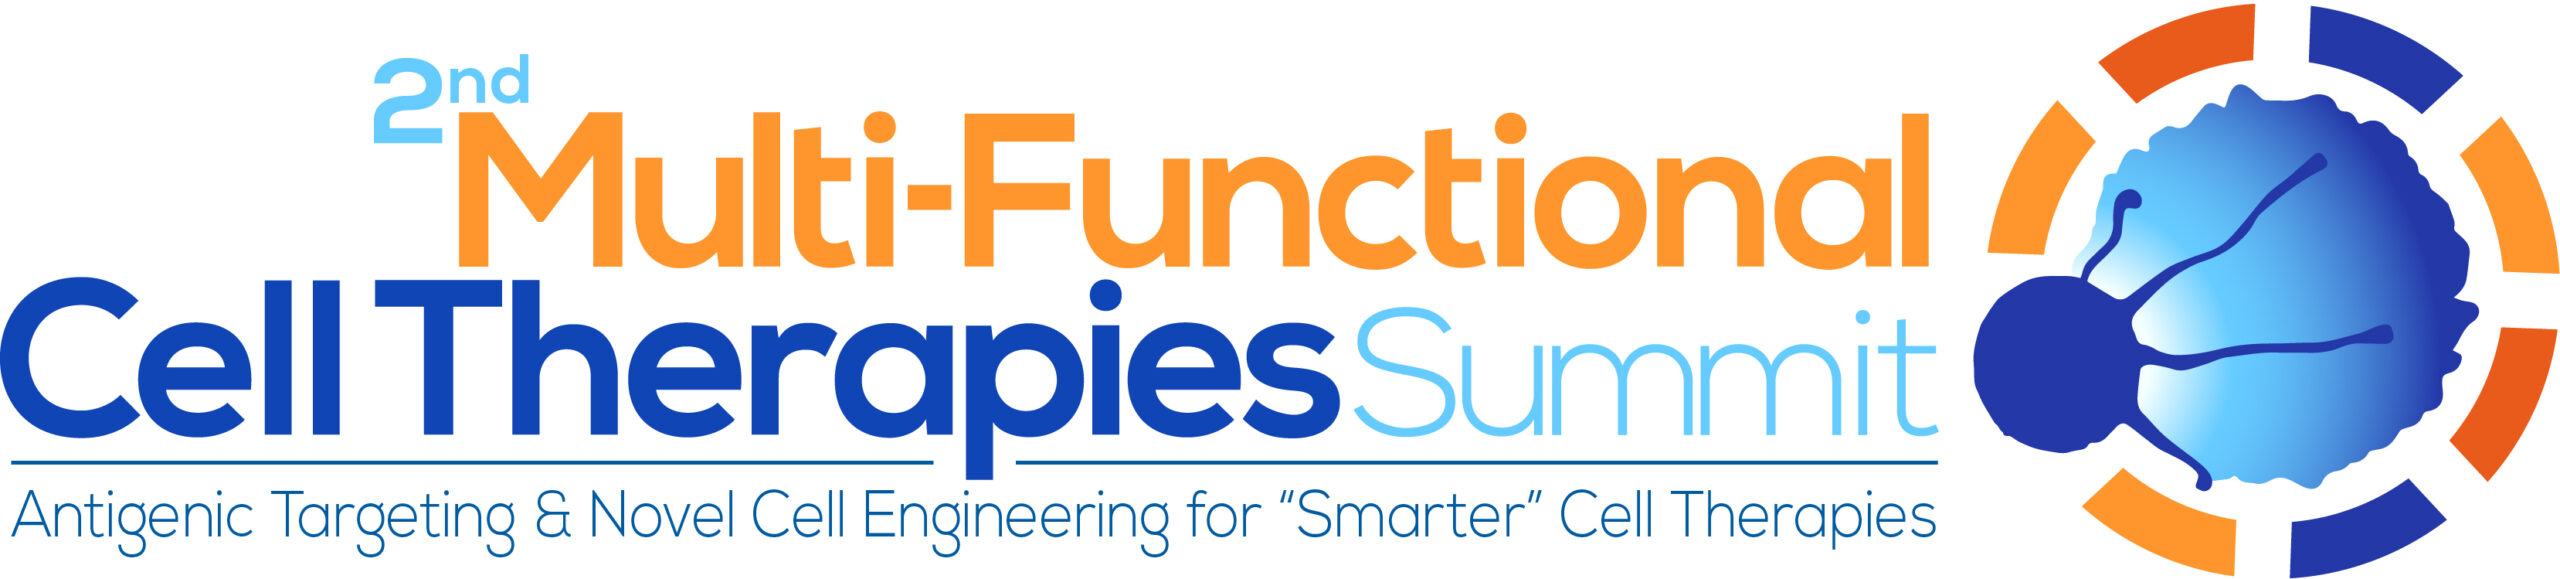 HW210825 2nd Multi-Functional Cell Therapies Summit logo